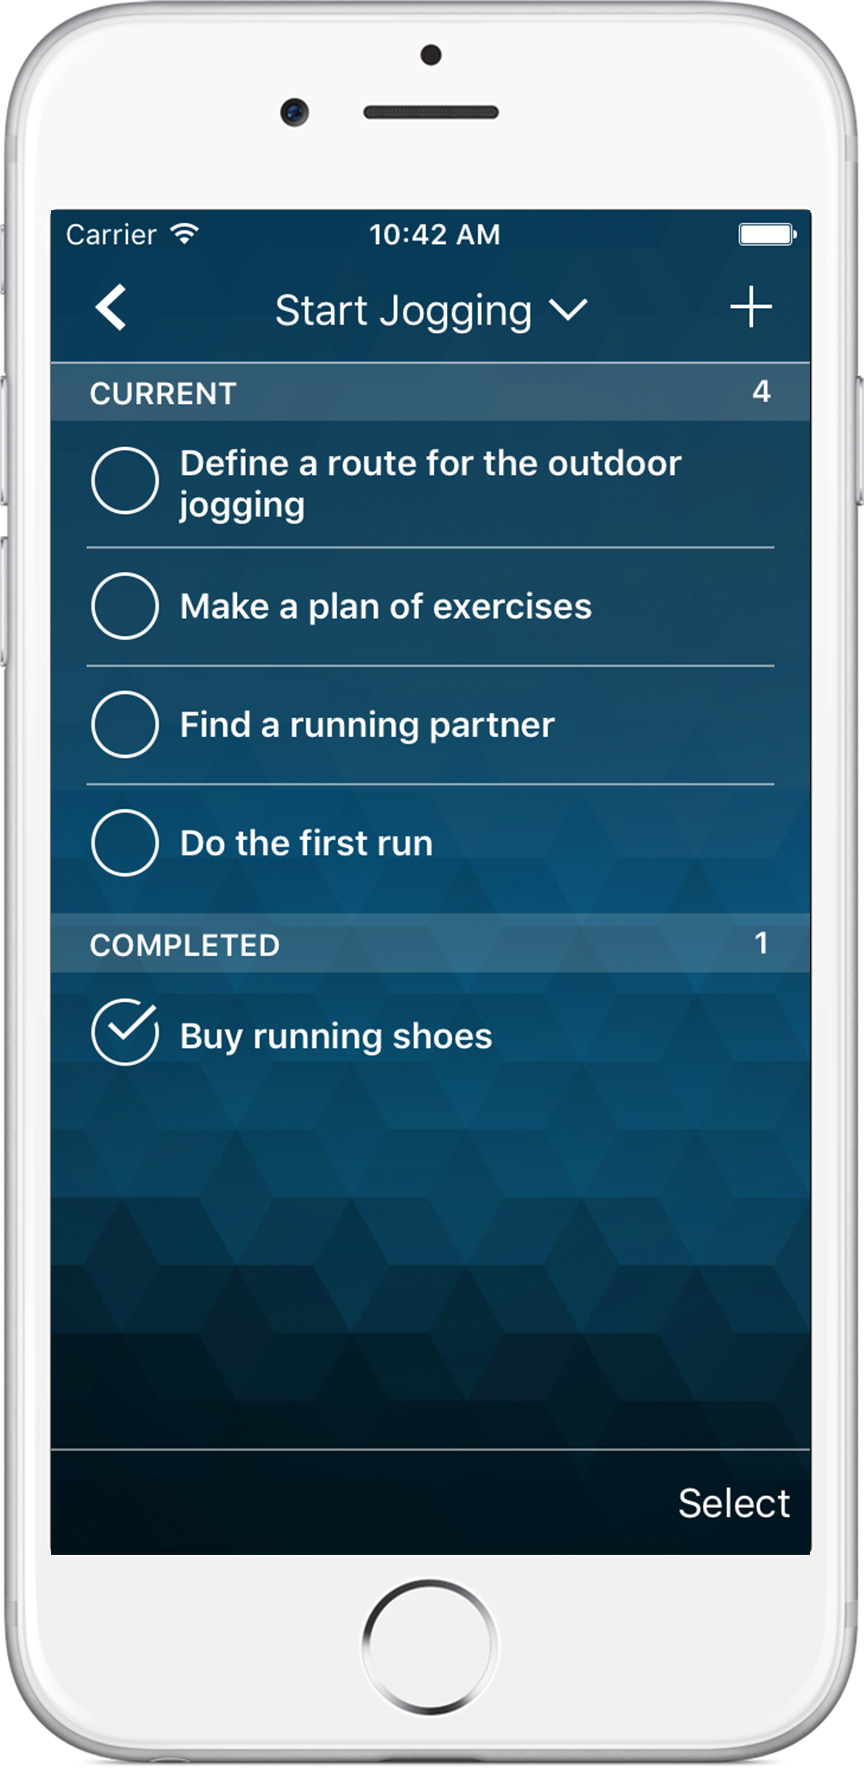 Time Pro para iPhone - To-do list